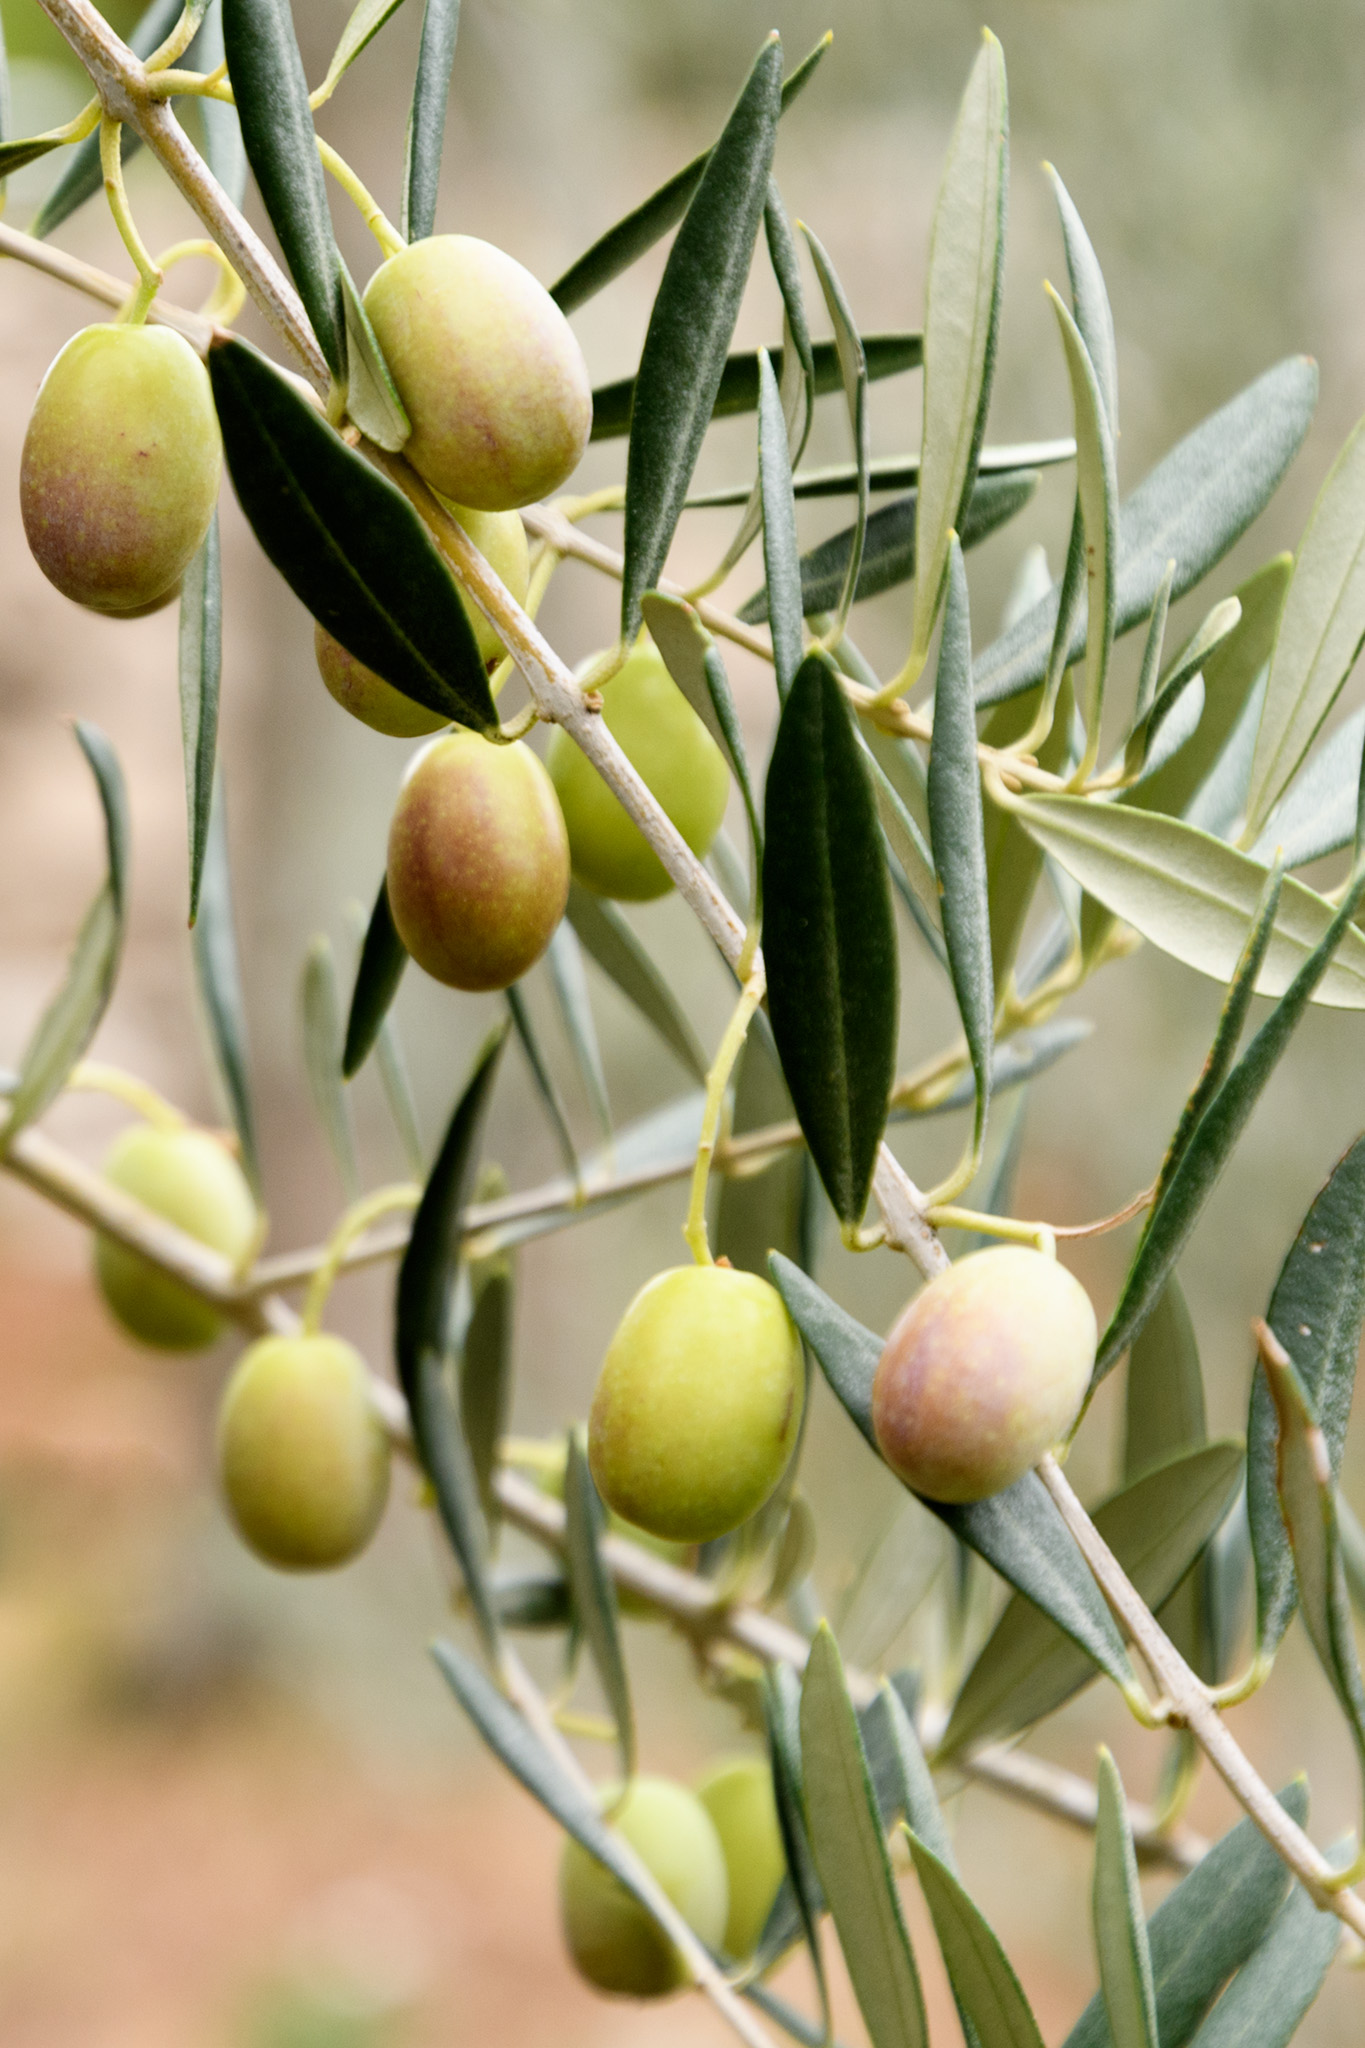 The trail along the beach also has a small demonstration garden of local agricultural products including these olives!  I never knew that both green and black olives grow on the same tree, the only difference is the level of ripeness!